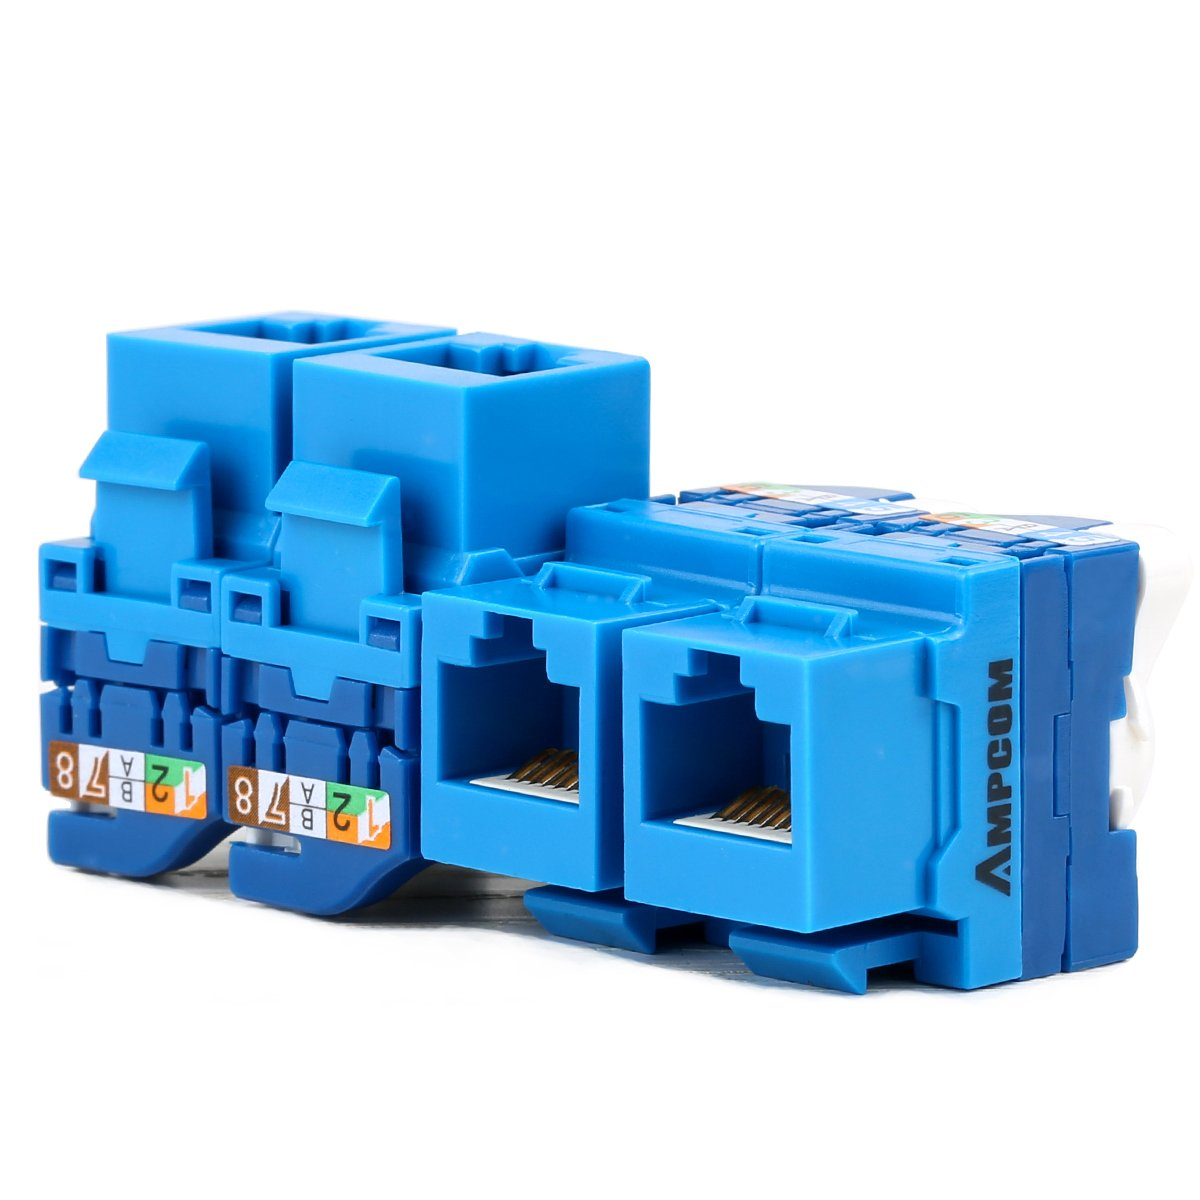 10-PACK CAT6 Tool Less Keystone Jack,AMPCOM RJ45 Self-Locking Cat.6 Keystone Module Adapter No Punch-Down Tool Required Couplers For Wall Plate UTP Blue